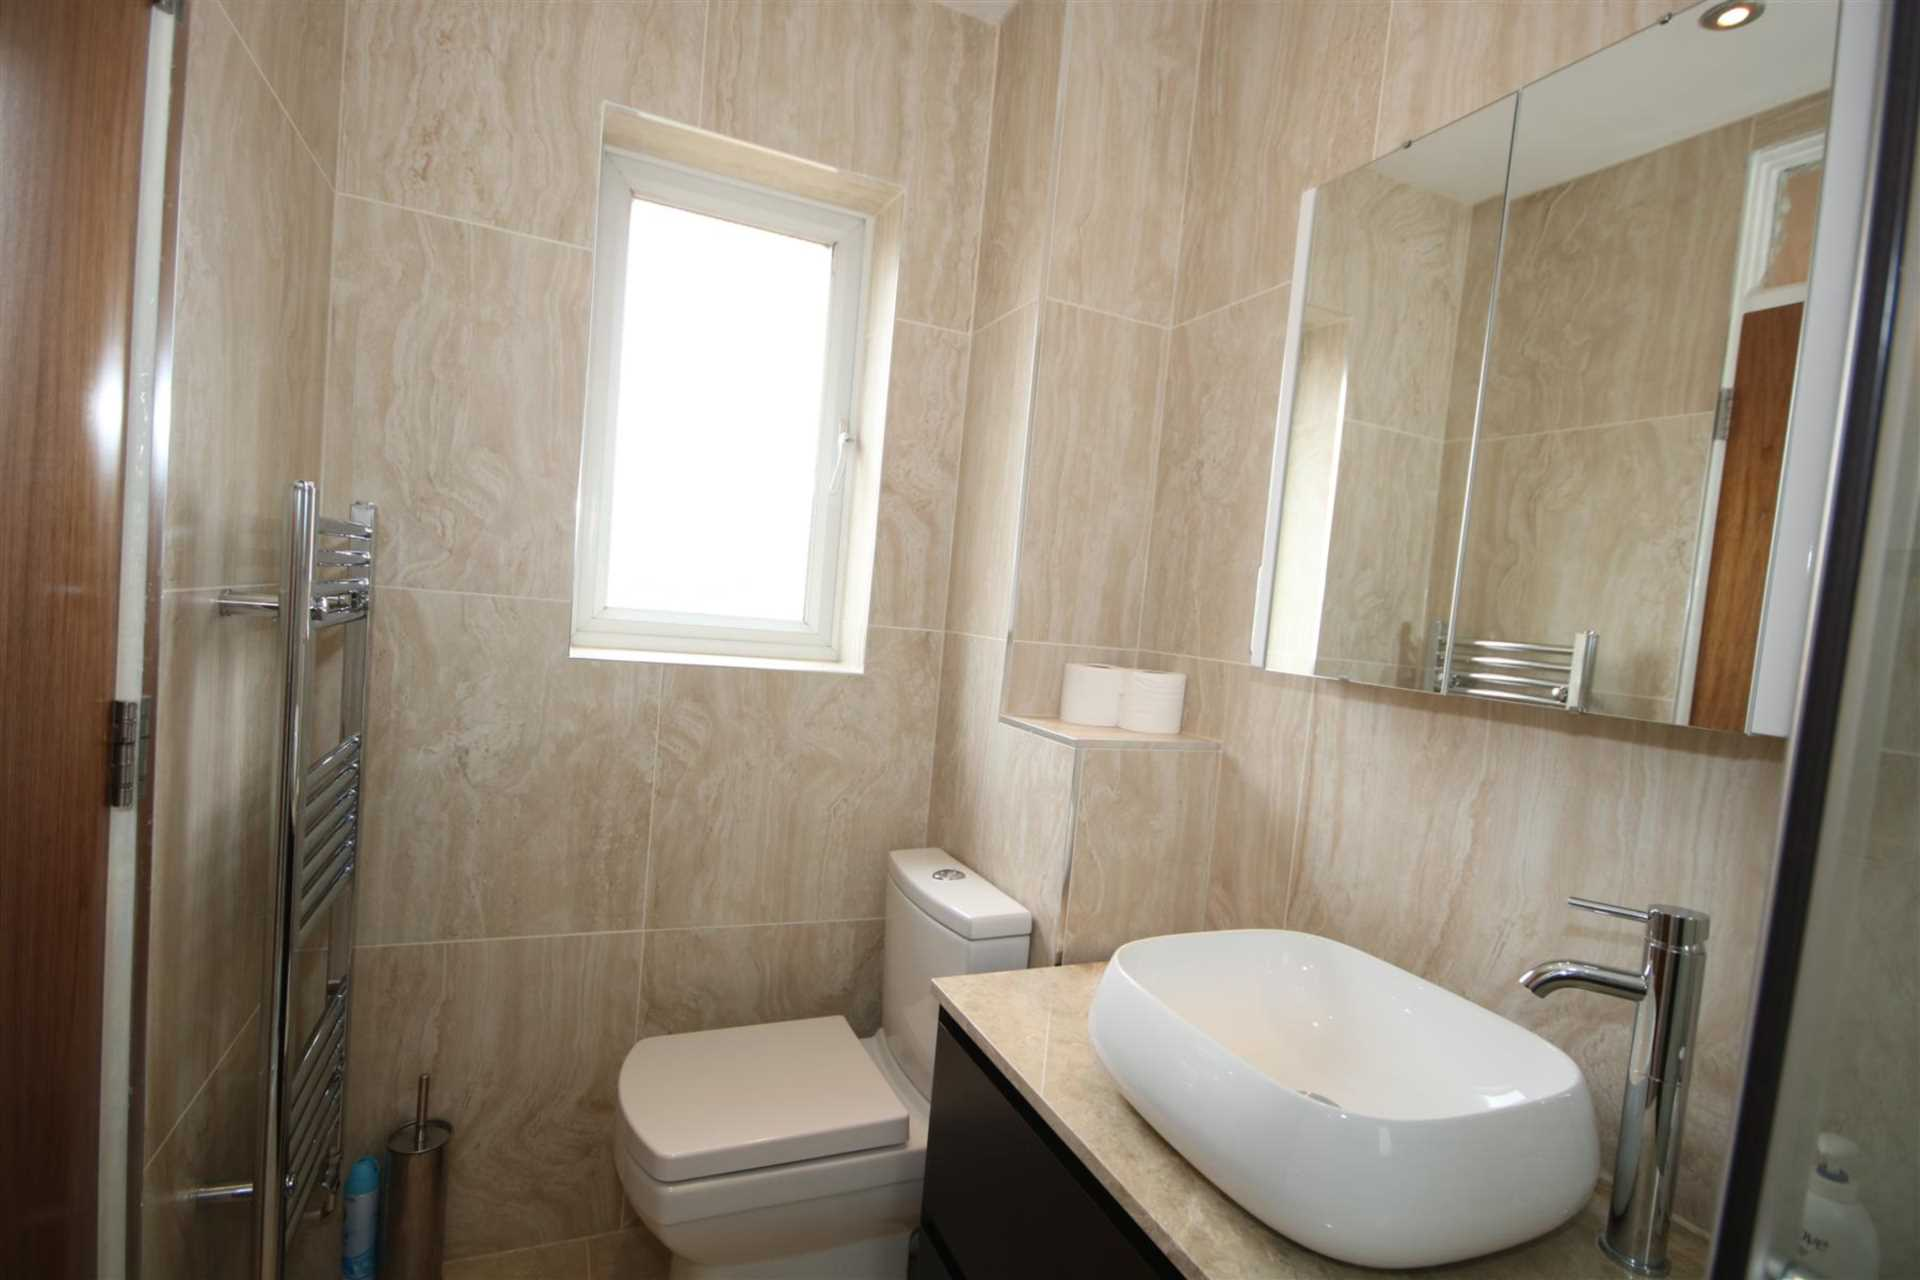 LOVELY 1 BED HOUSE IN CUL DE SAC WITH GARDEN, Image 11